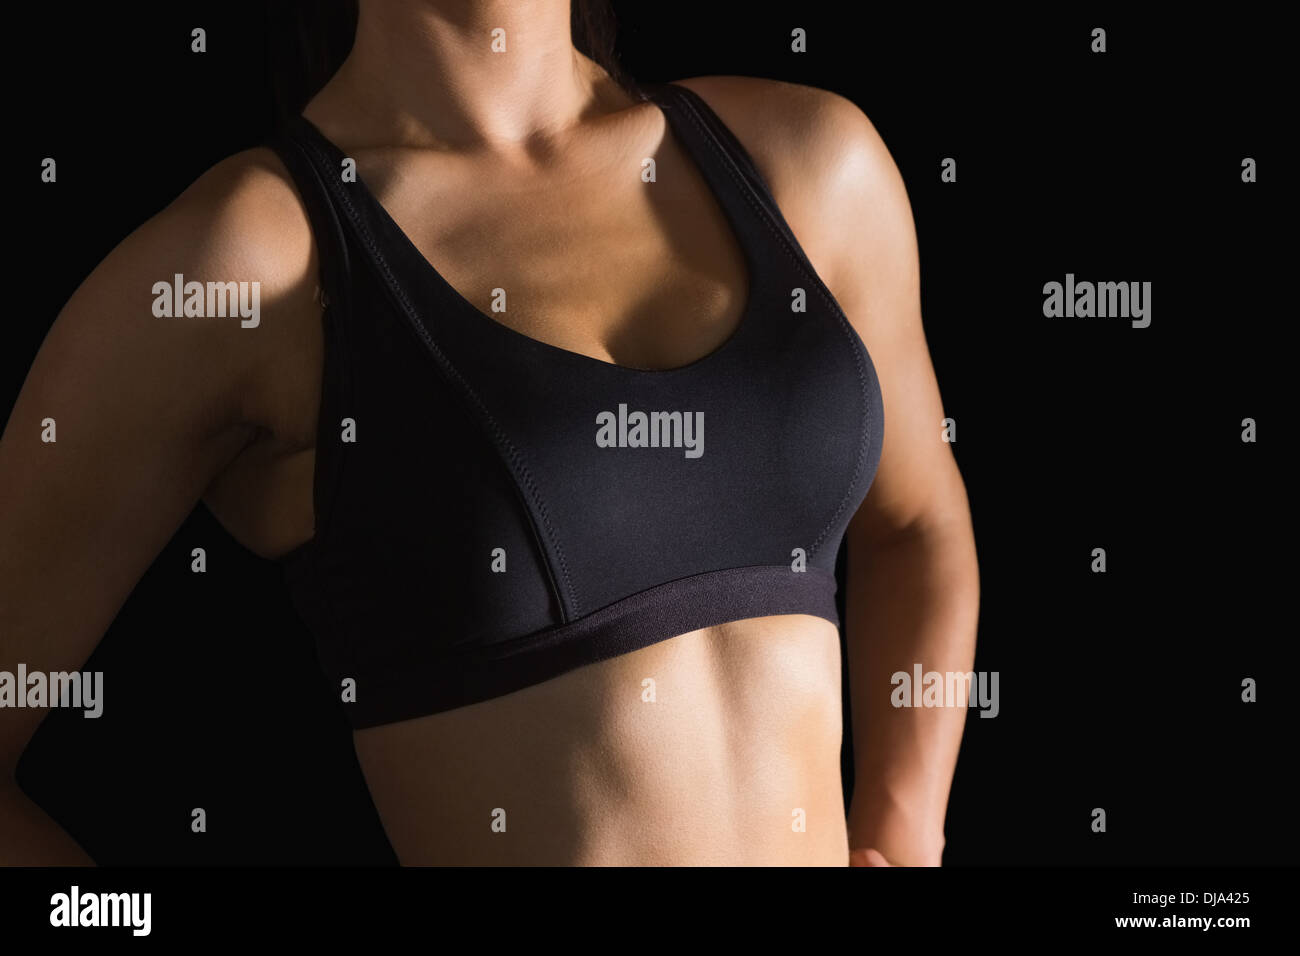 Mid section of slender woman wearing sports bra - Stock Image